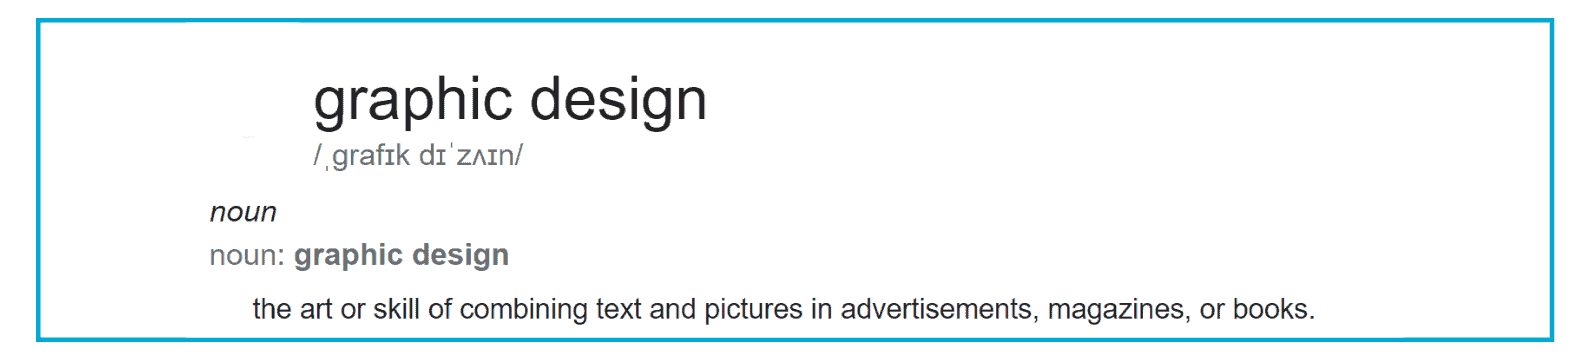 Graphic Design Dictionary Definition